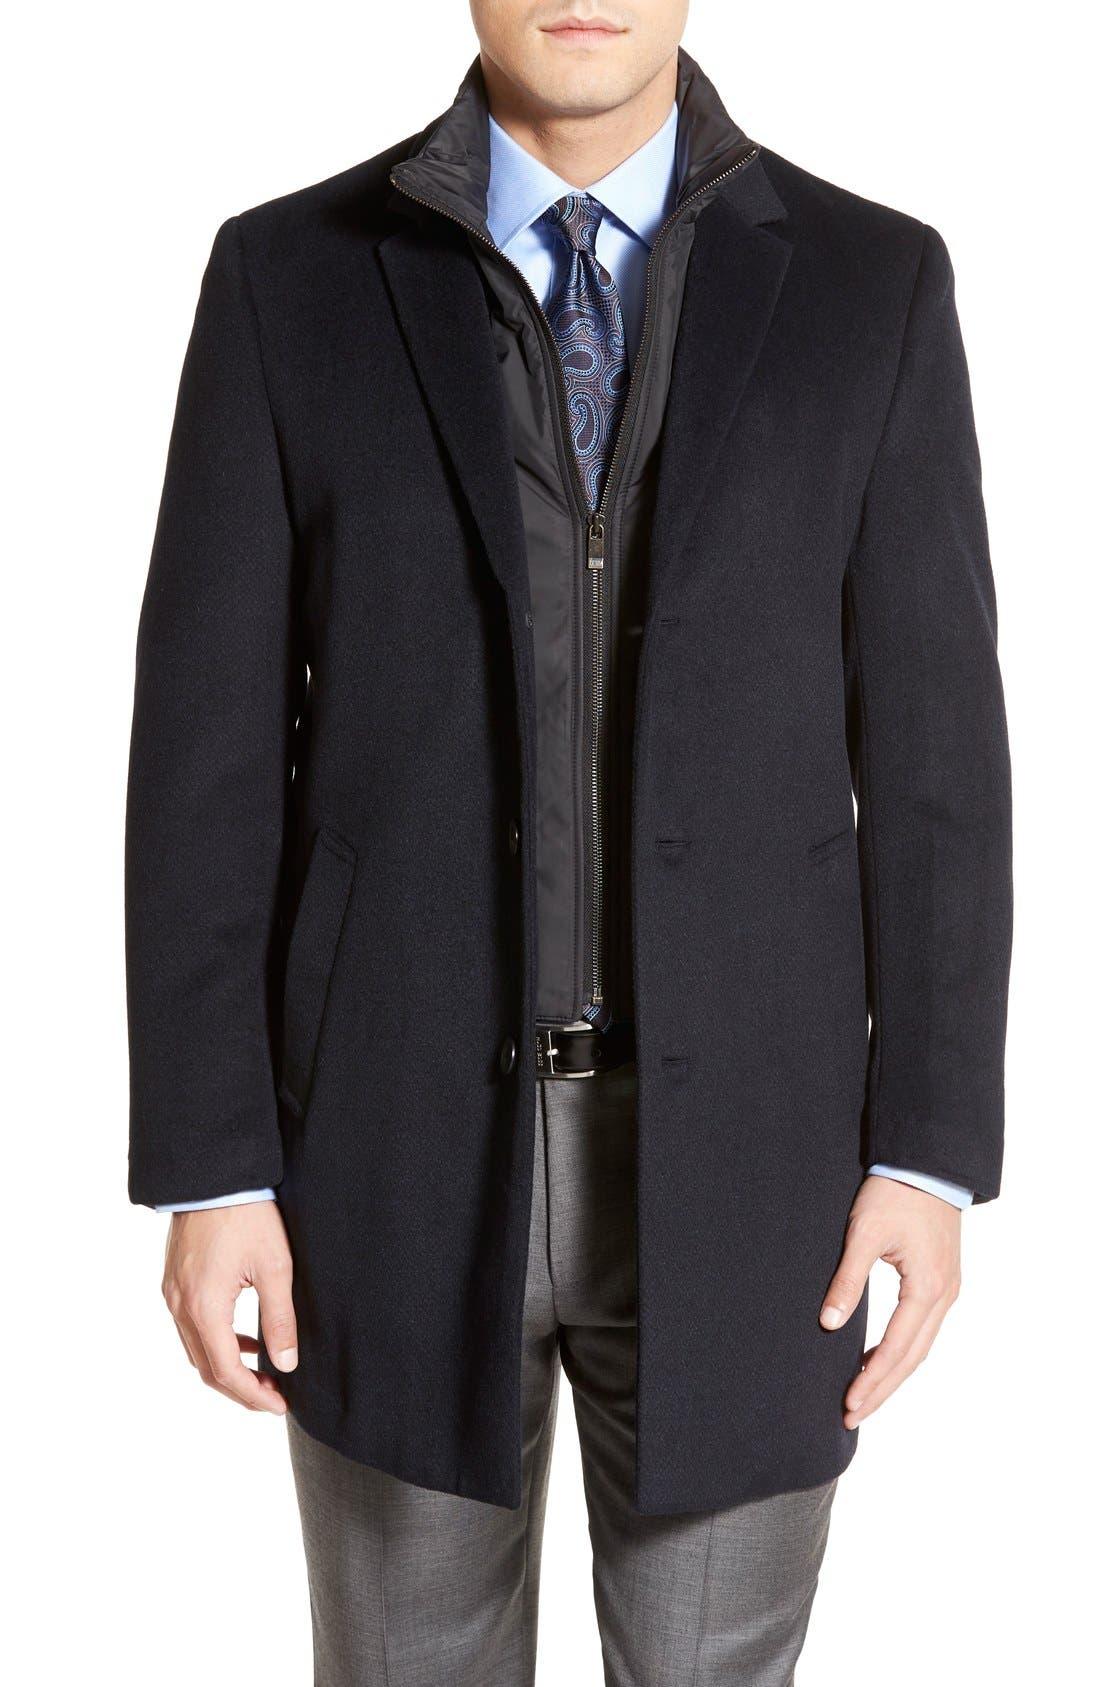 Kingman Modern Fit Wool Blend Coat with Removable Zipper Bib,                         Main,                         color, Navy/ Black